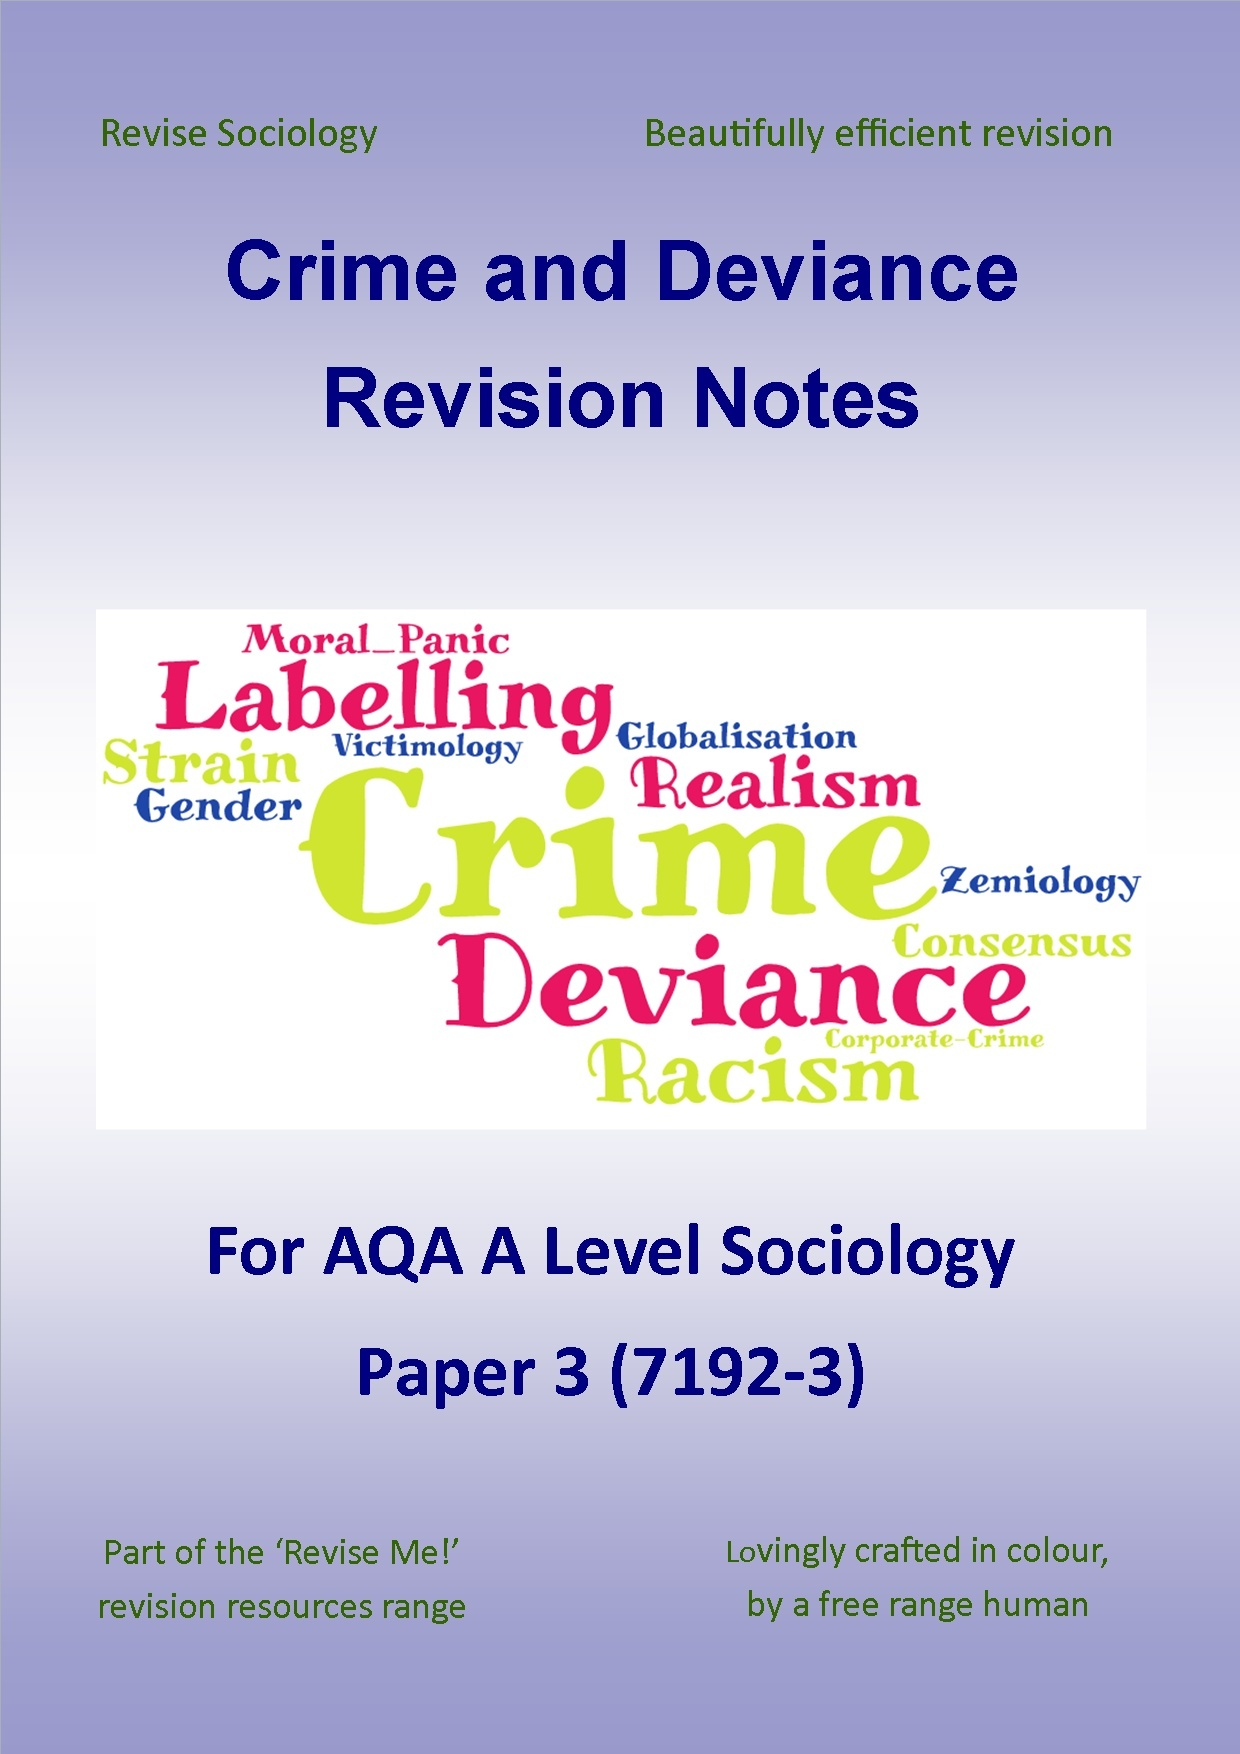 deviance in music essay Below is an essay on youth, deviance, and subcultures in music from anti essays, your source for research papers, essays, and term paper examples youth, deviance, and subcultures deviance: is described as actions or behaviors that violate social norms, including formally enacted rules as well as informal violations of social norms.